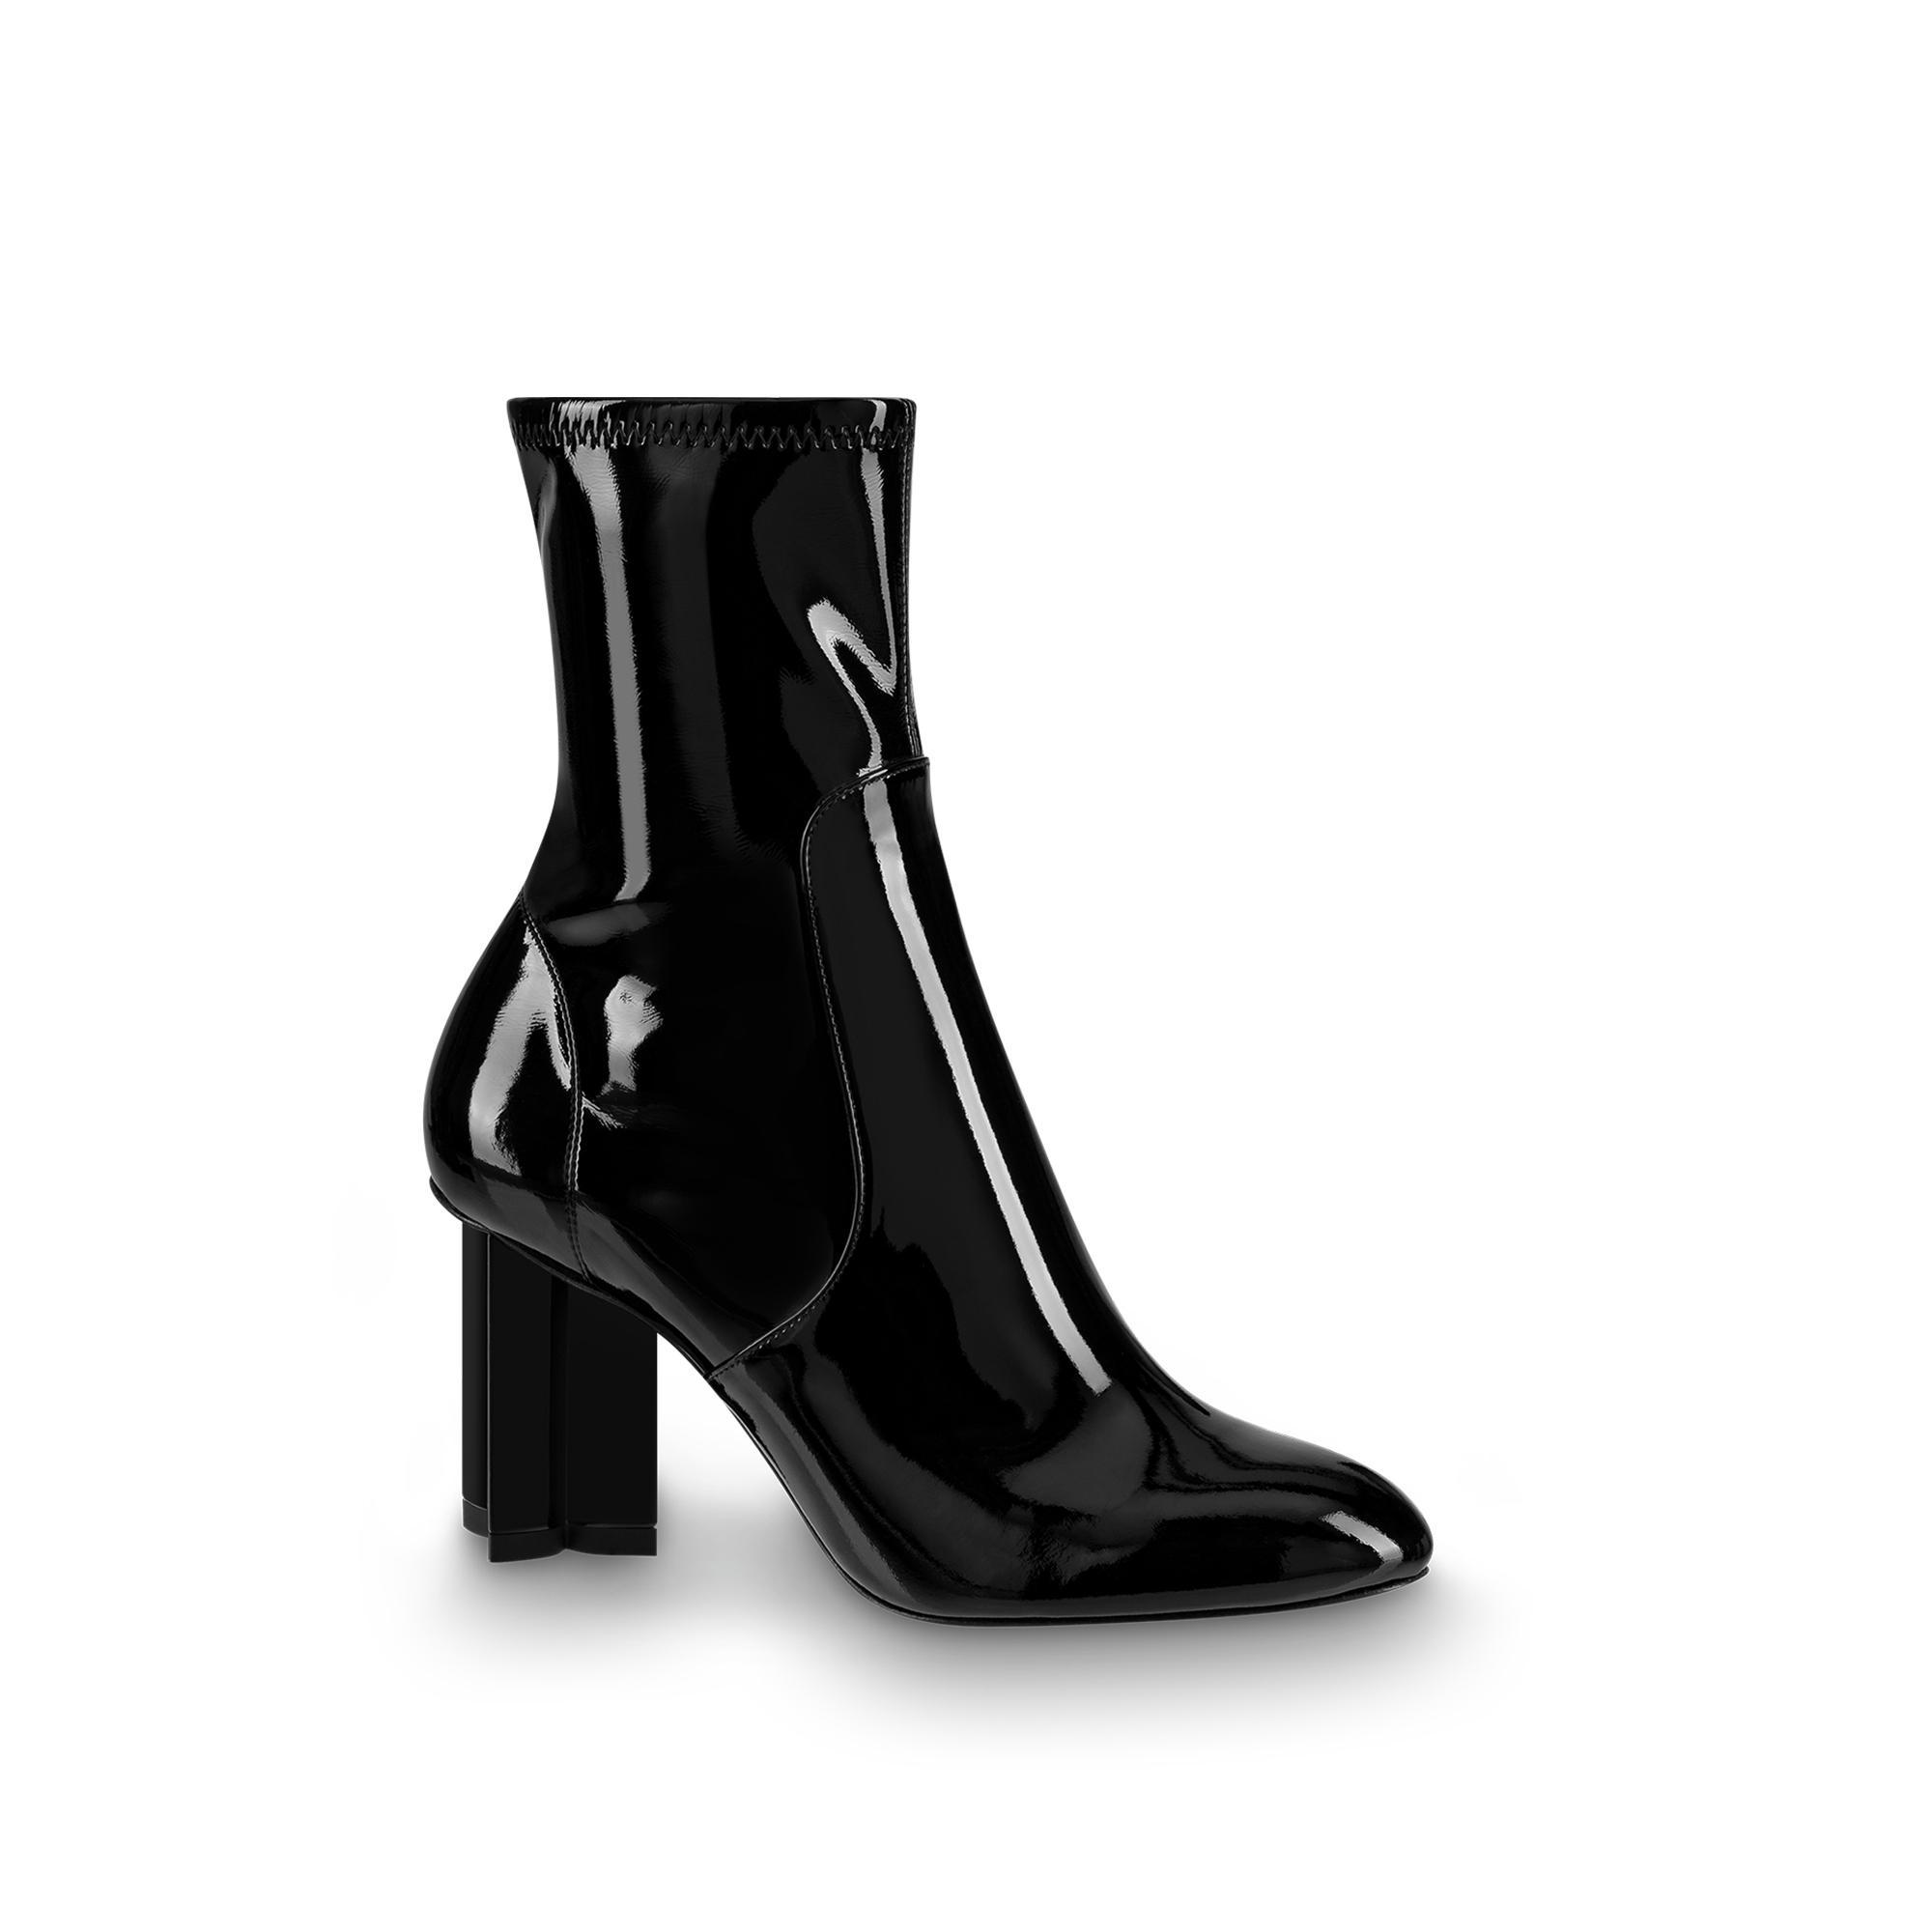 Silhouette Ankle Boot in Noir from LOUIS VUITTON